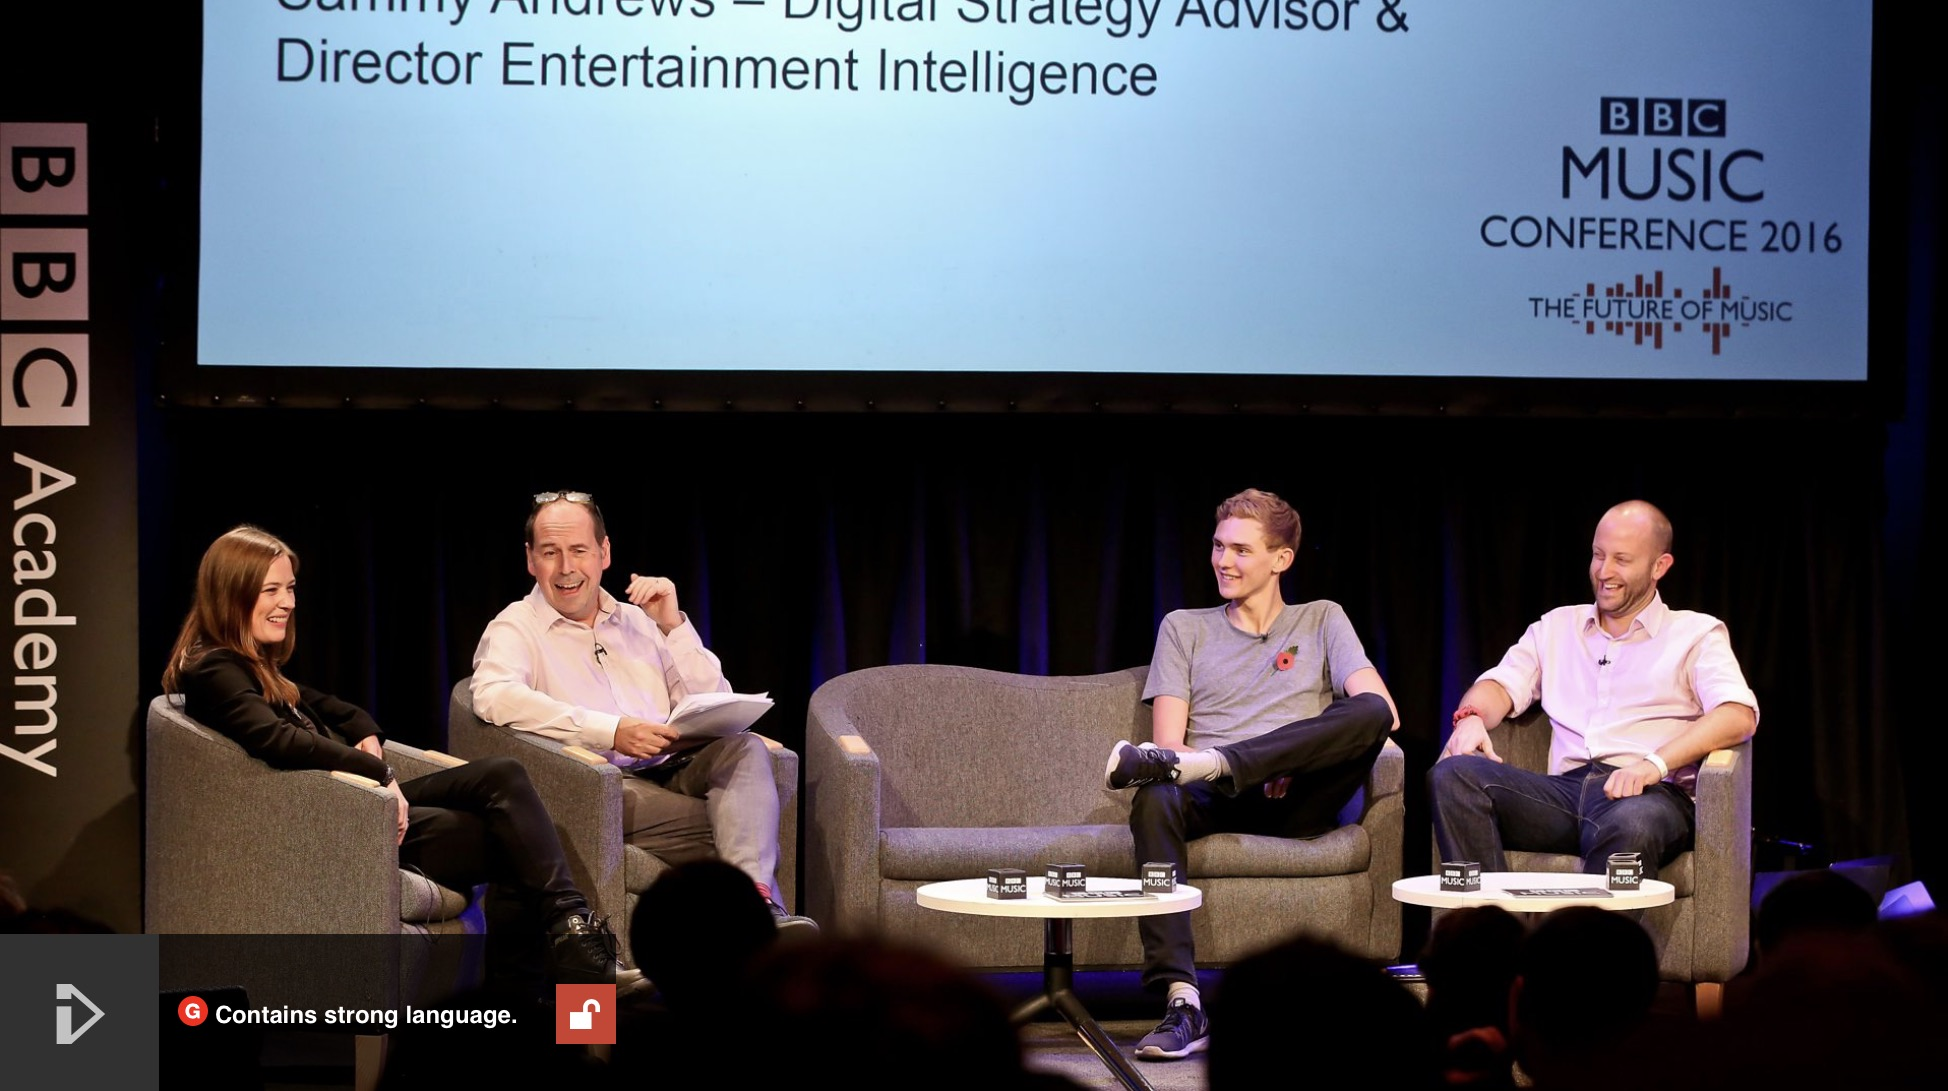 BBC Future Music Conference 2016 – The End of Innovation in Digital Music